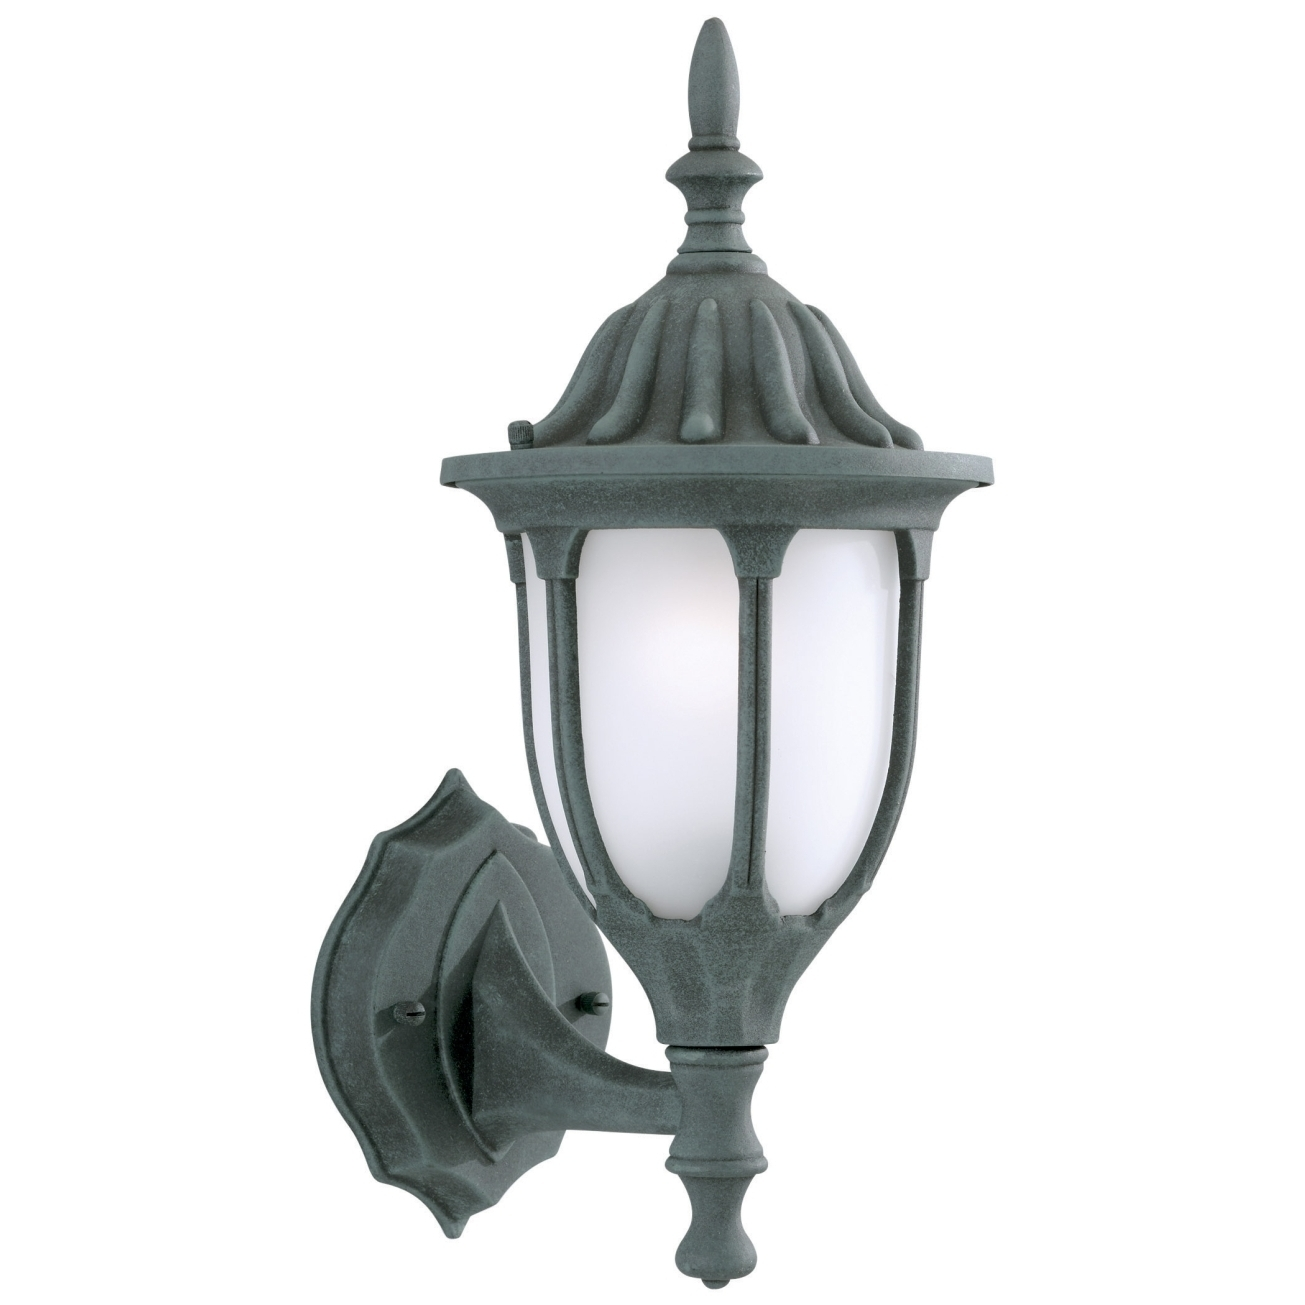 Best And Newest Exterior Light Fixtures & Outdoor Wall Lighting At Ace Hardware With Regard To Home Hardware Outdoor Ceiling Lights (View 1 of 20)